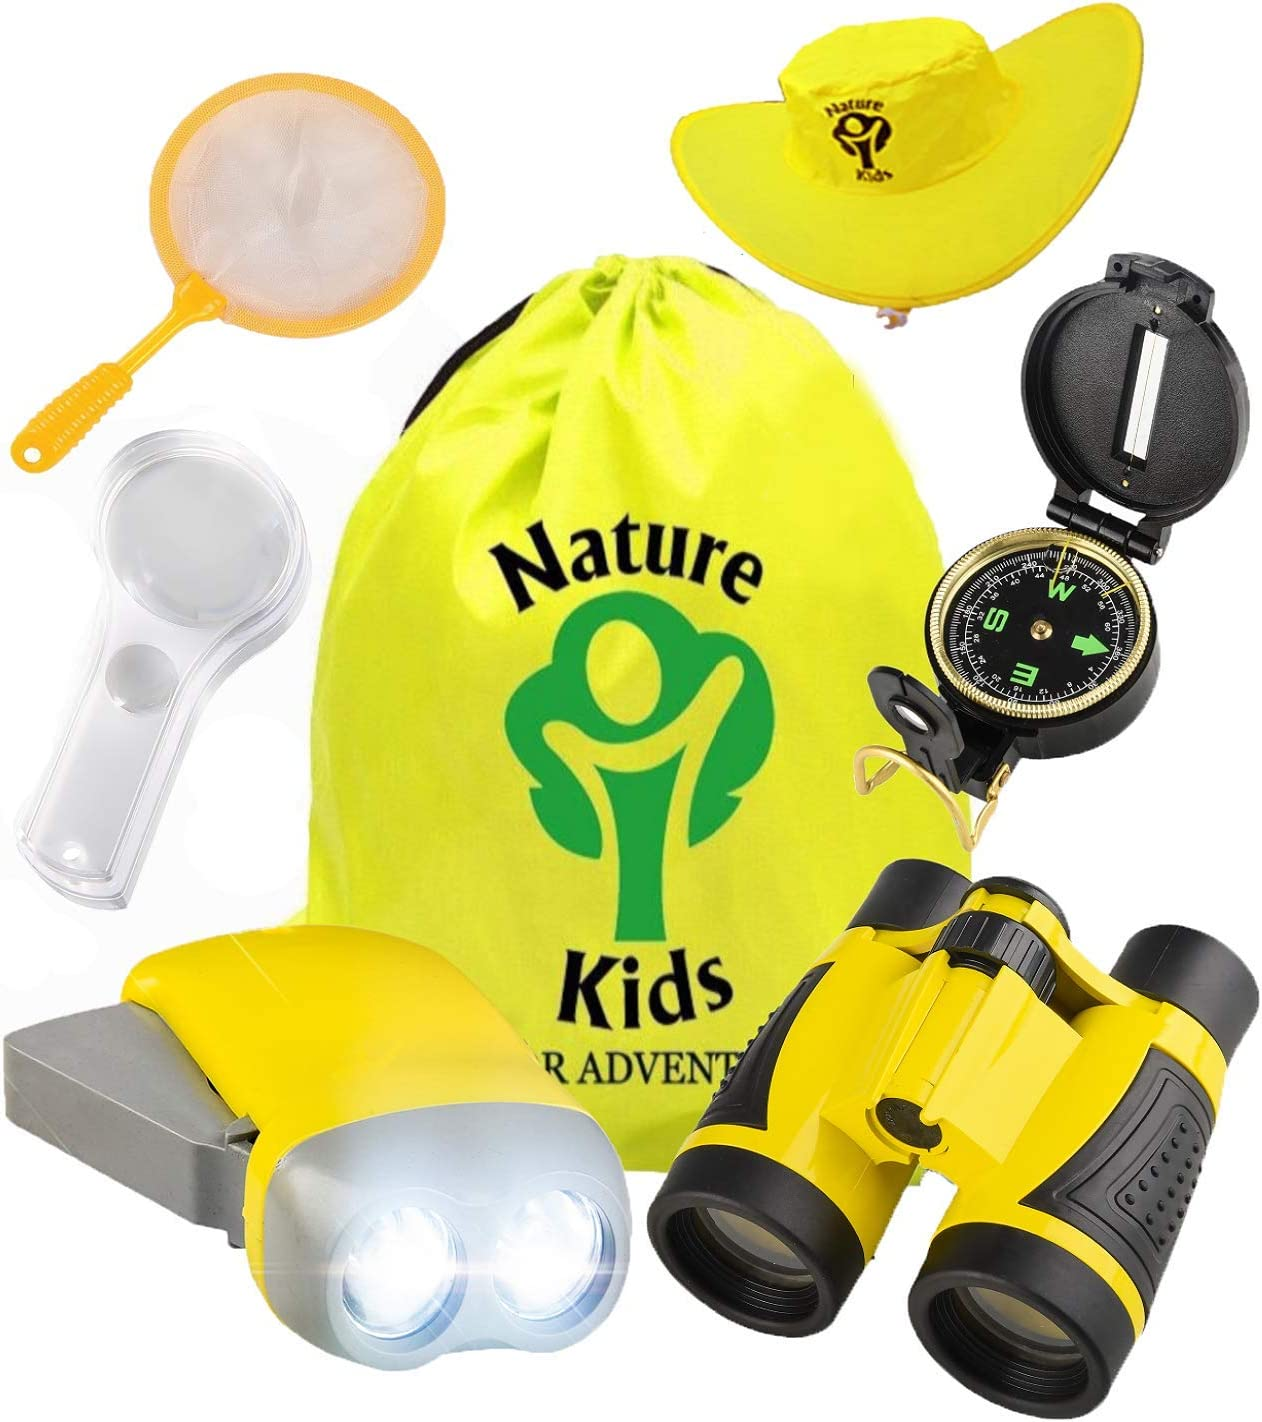 Flashlight Compass Childrens Toy Binoculars Outdoor Exploration Kit: Kids Adventure Set Educational Gift for Hiking Butterfly Net Magnifying Glass Backpack Whistle Camping /& Pretend Play